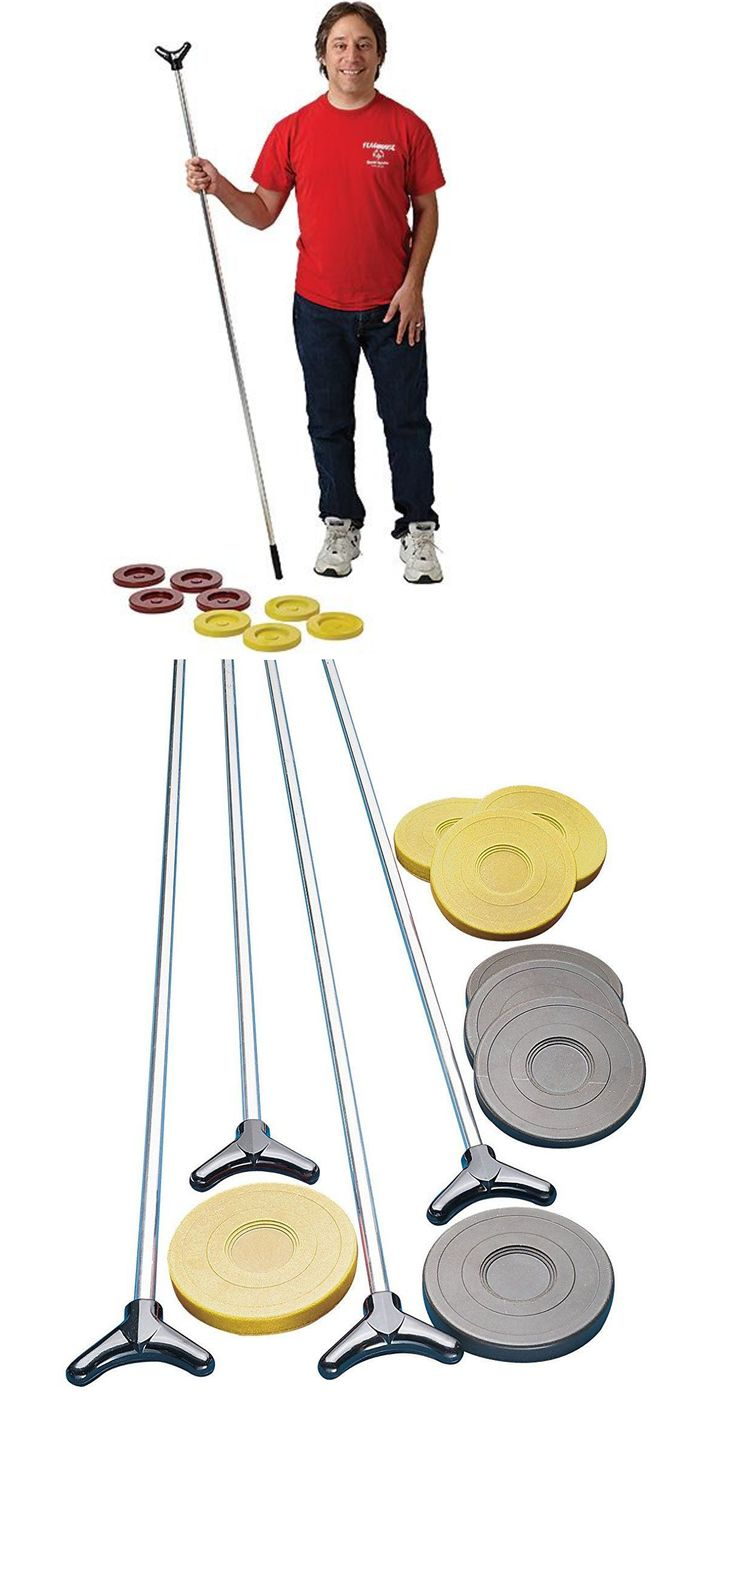 Shuffleboard 79777: Outdoor Shuffleboard Pucks Aluminum Cue Set Indoor Portable Durable Court Sports -> BUY IT NOW ONLY: $78.97 on eBay!